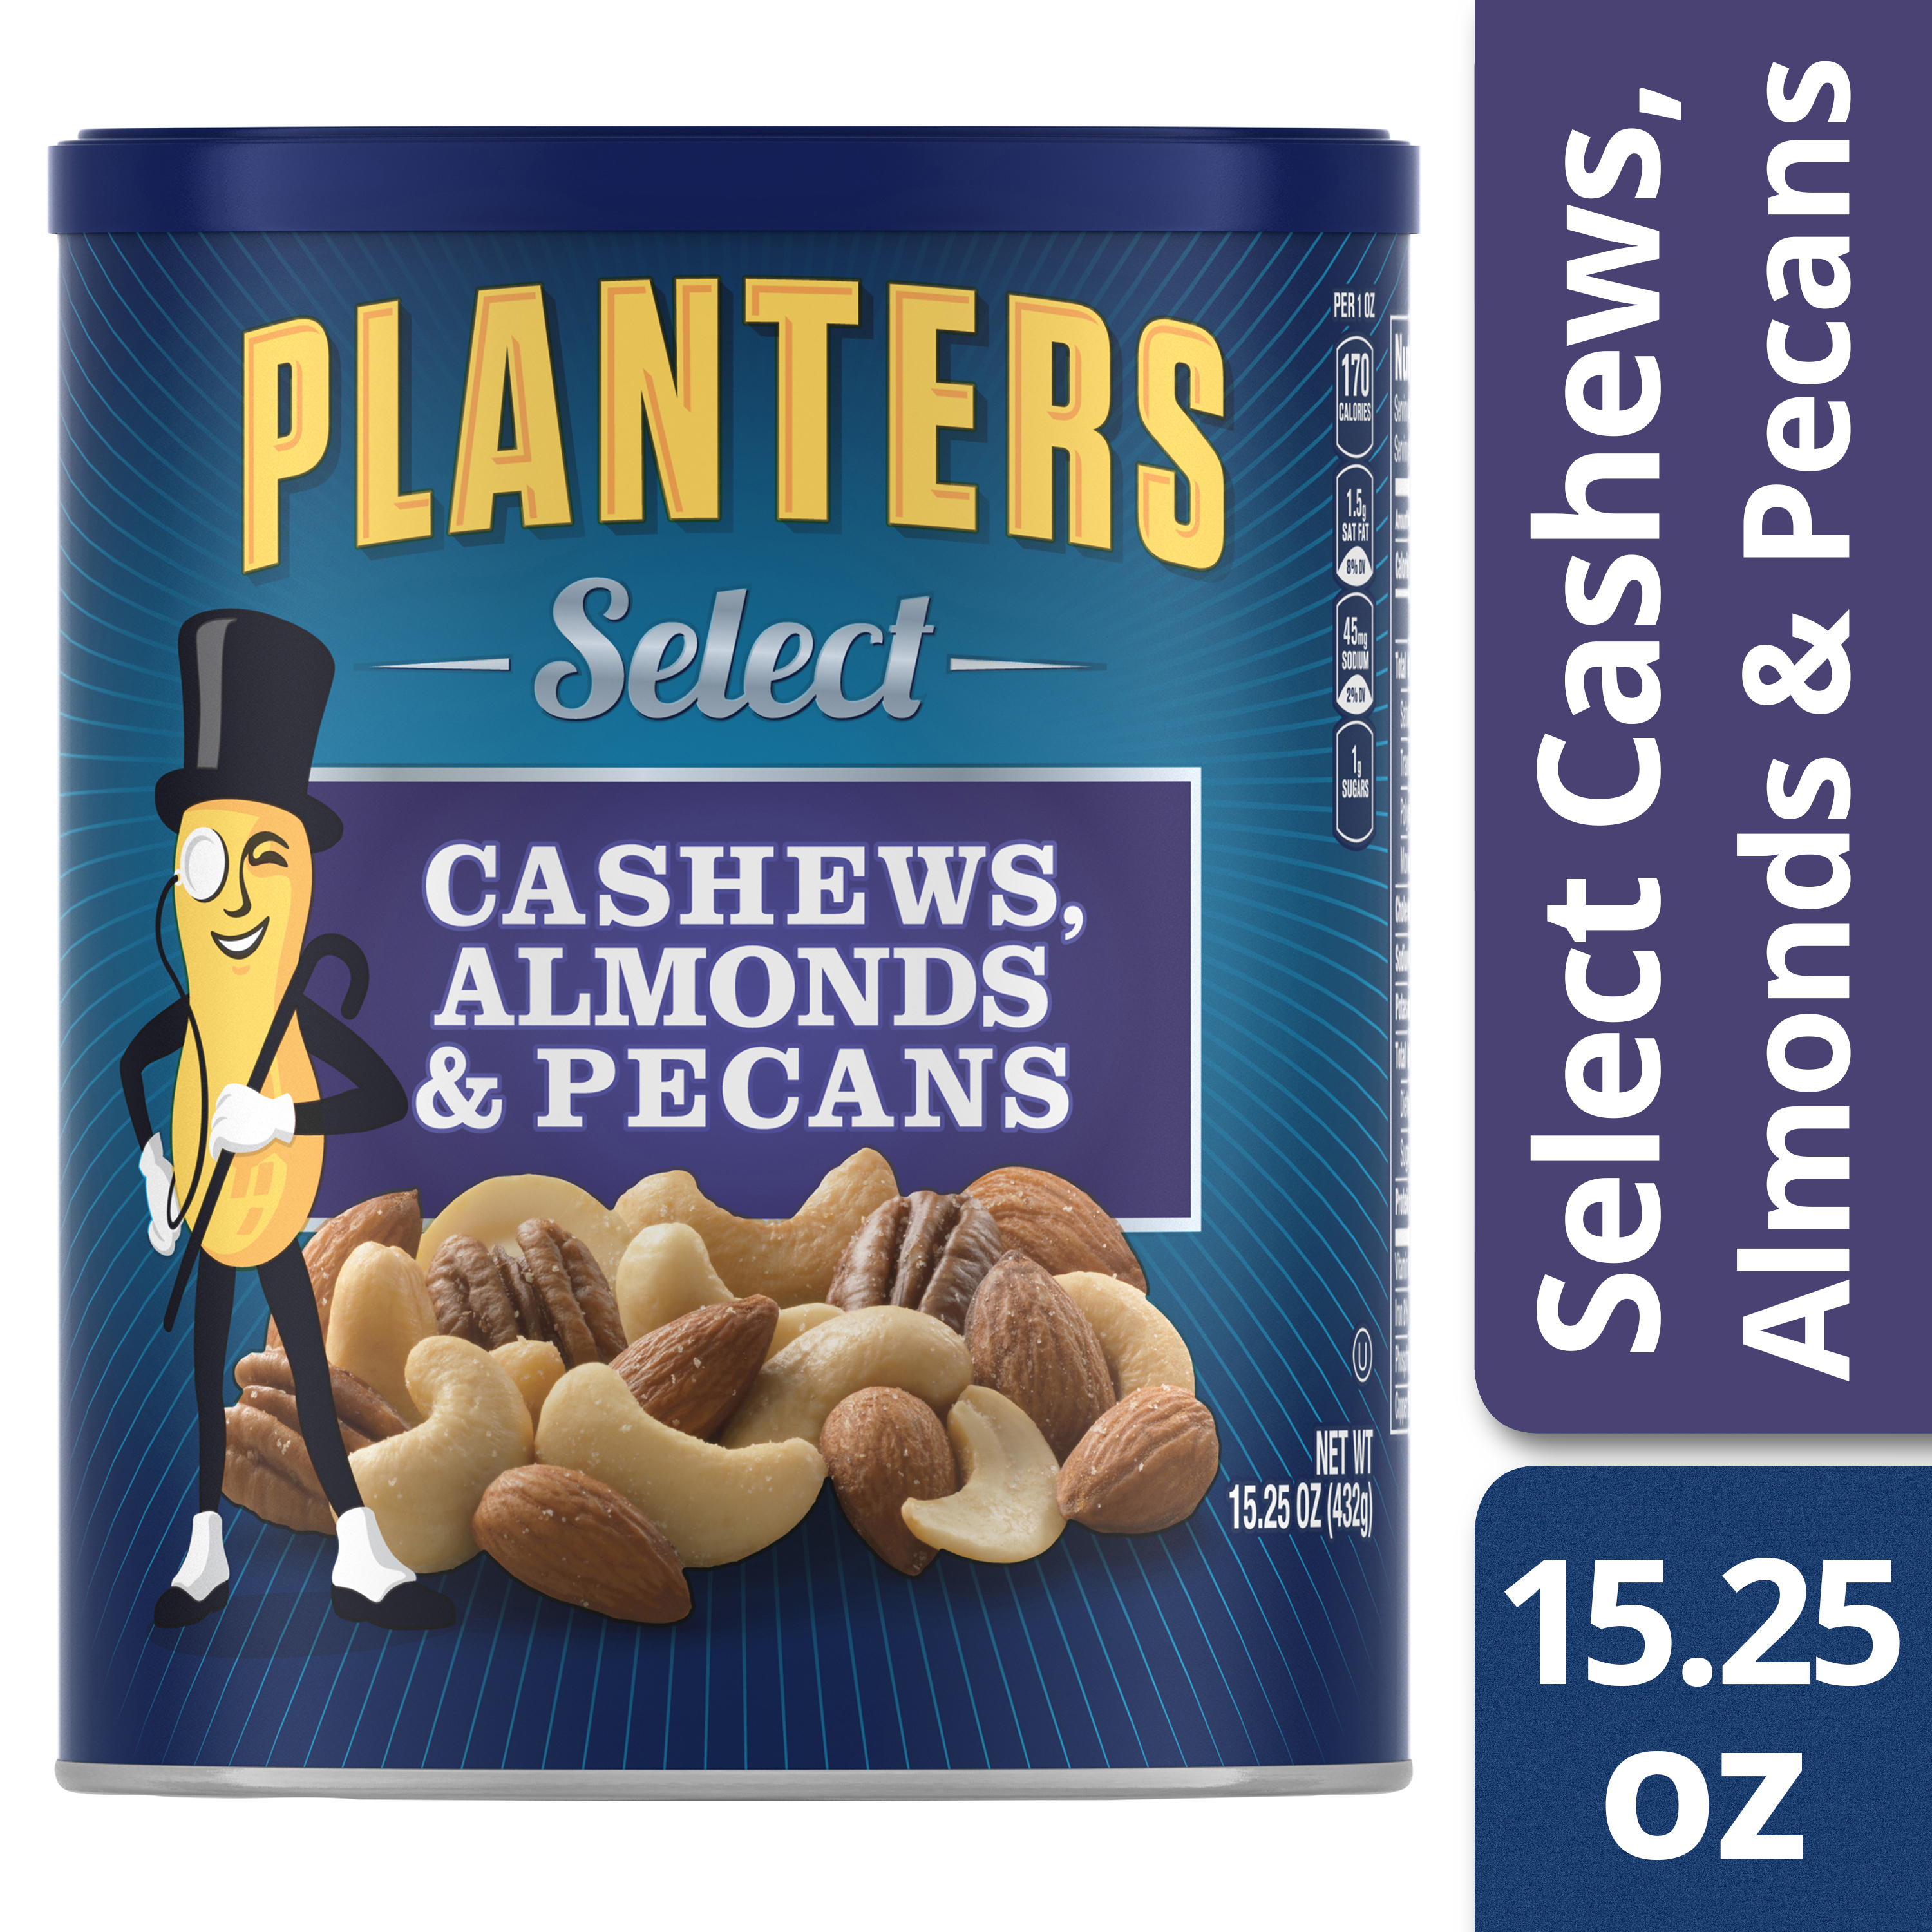 Planters Select Almonds, Cashews, and Pecans 15.25 oz Canister